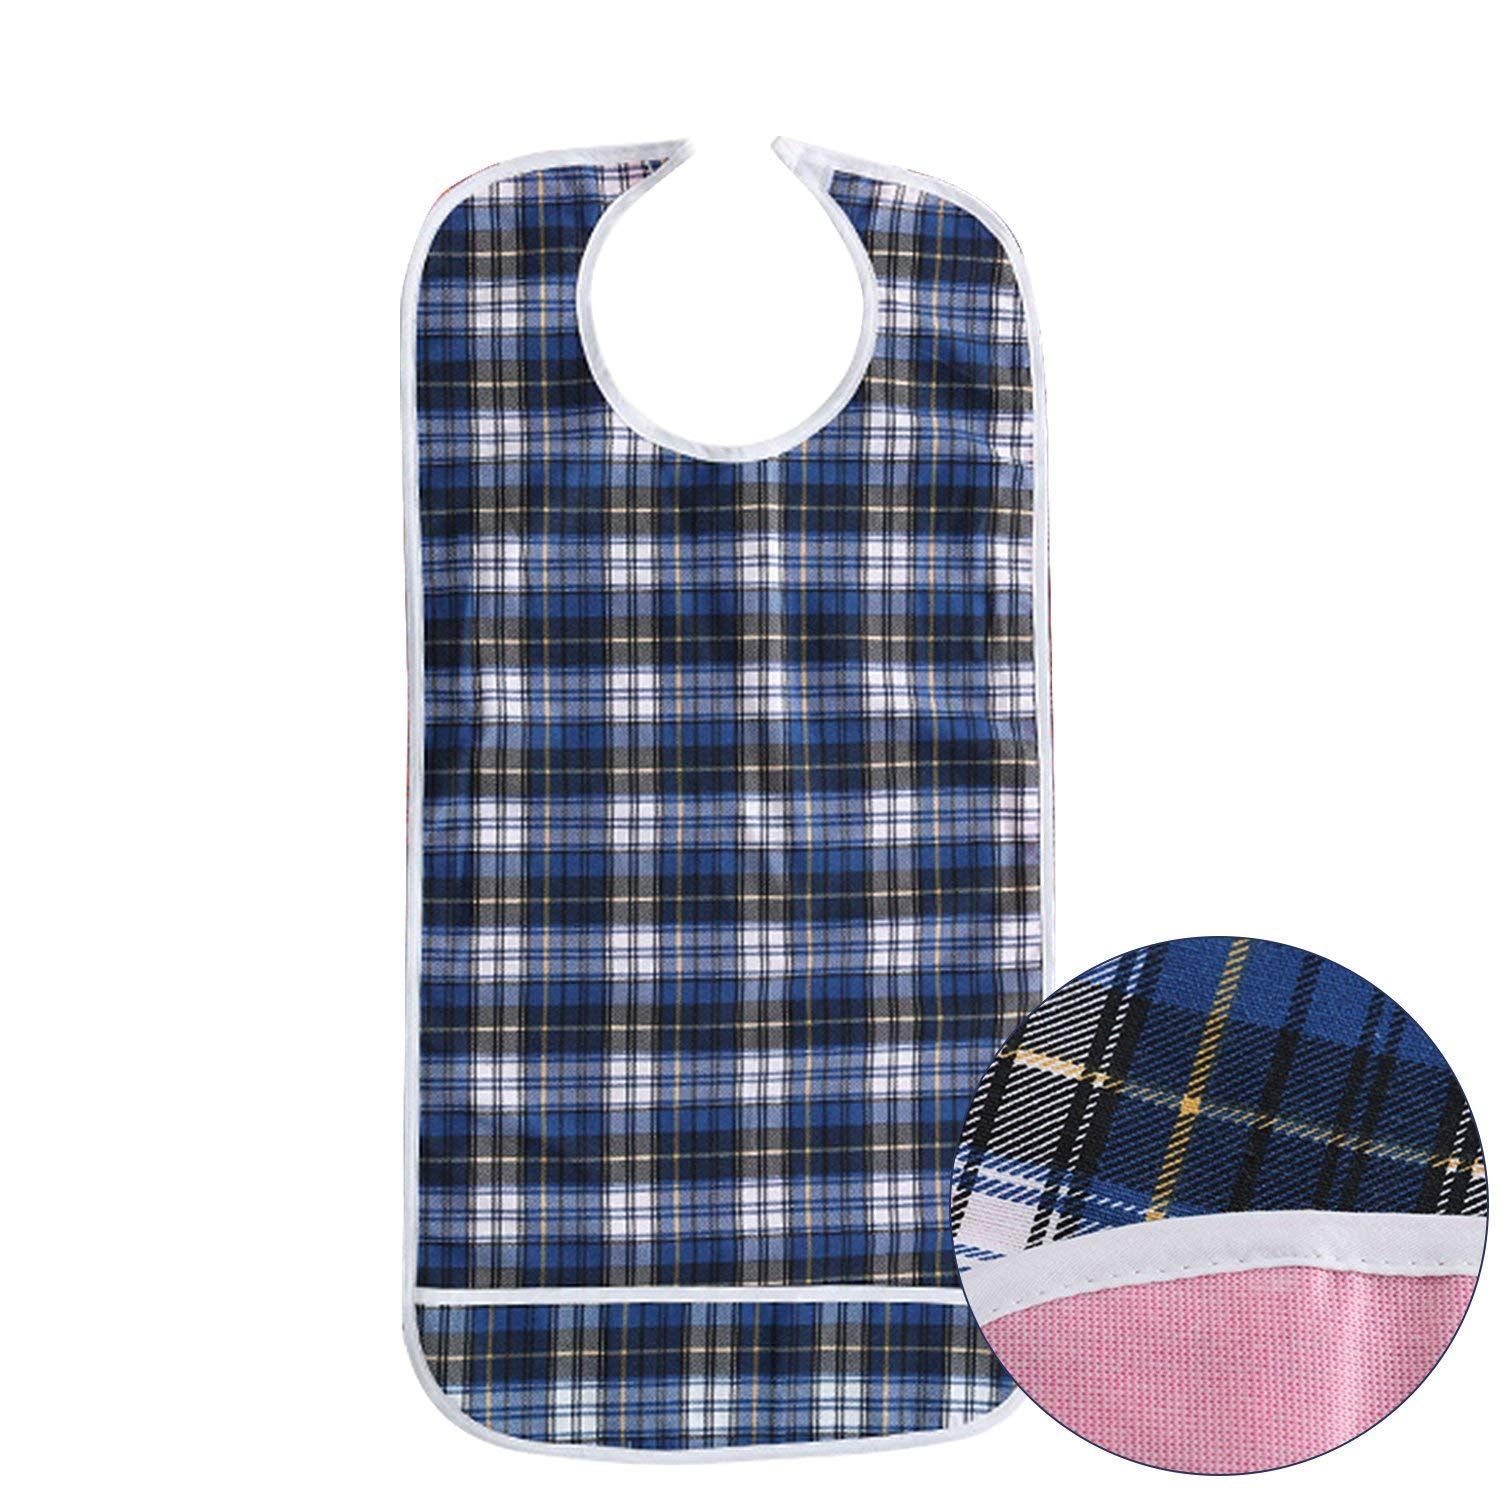 Adult Bibs - Double Layer Waterproof Mealtime Clothes Protector,Reusable Large Long Aid Bib Apron with Food Catcher for Elderly Men Women Disability (Blue)